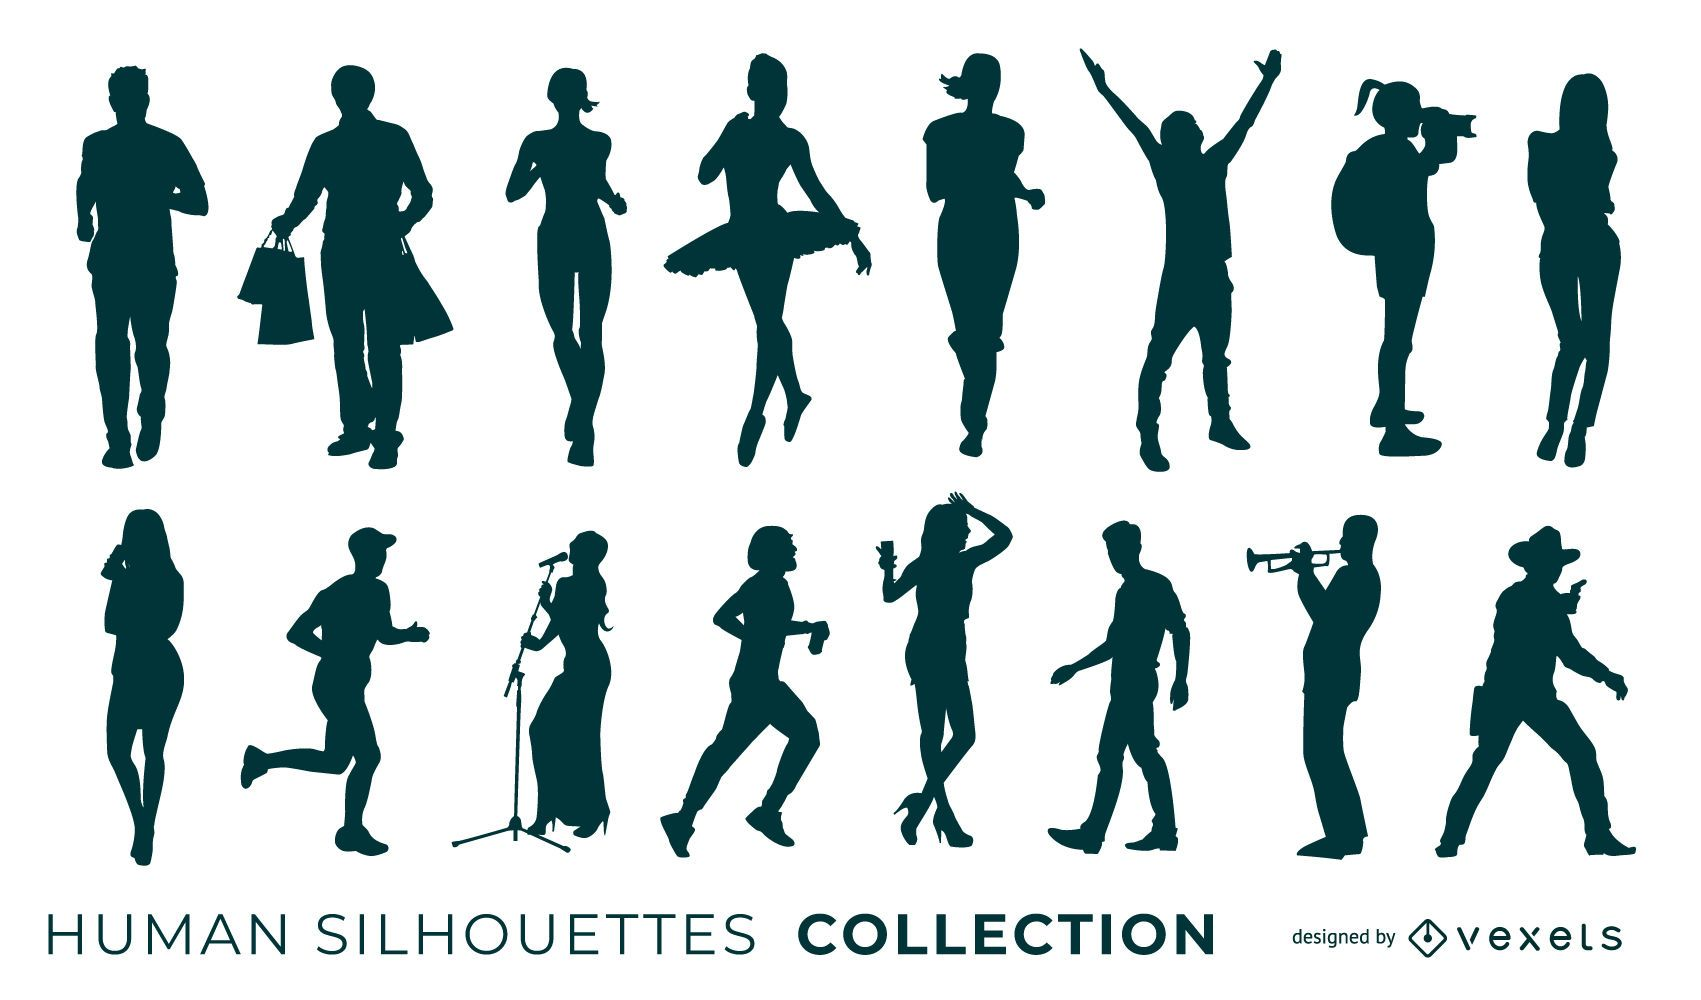 Human Silhouettes Collection